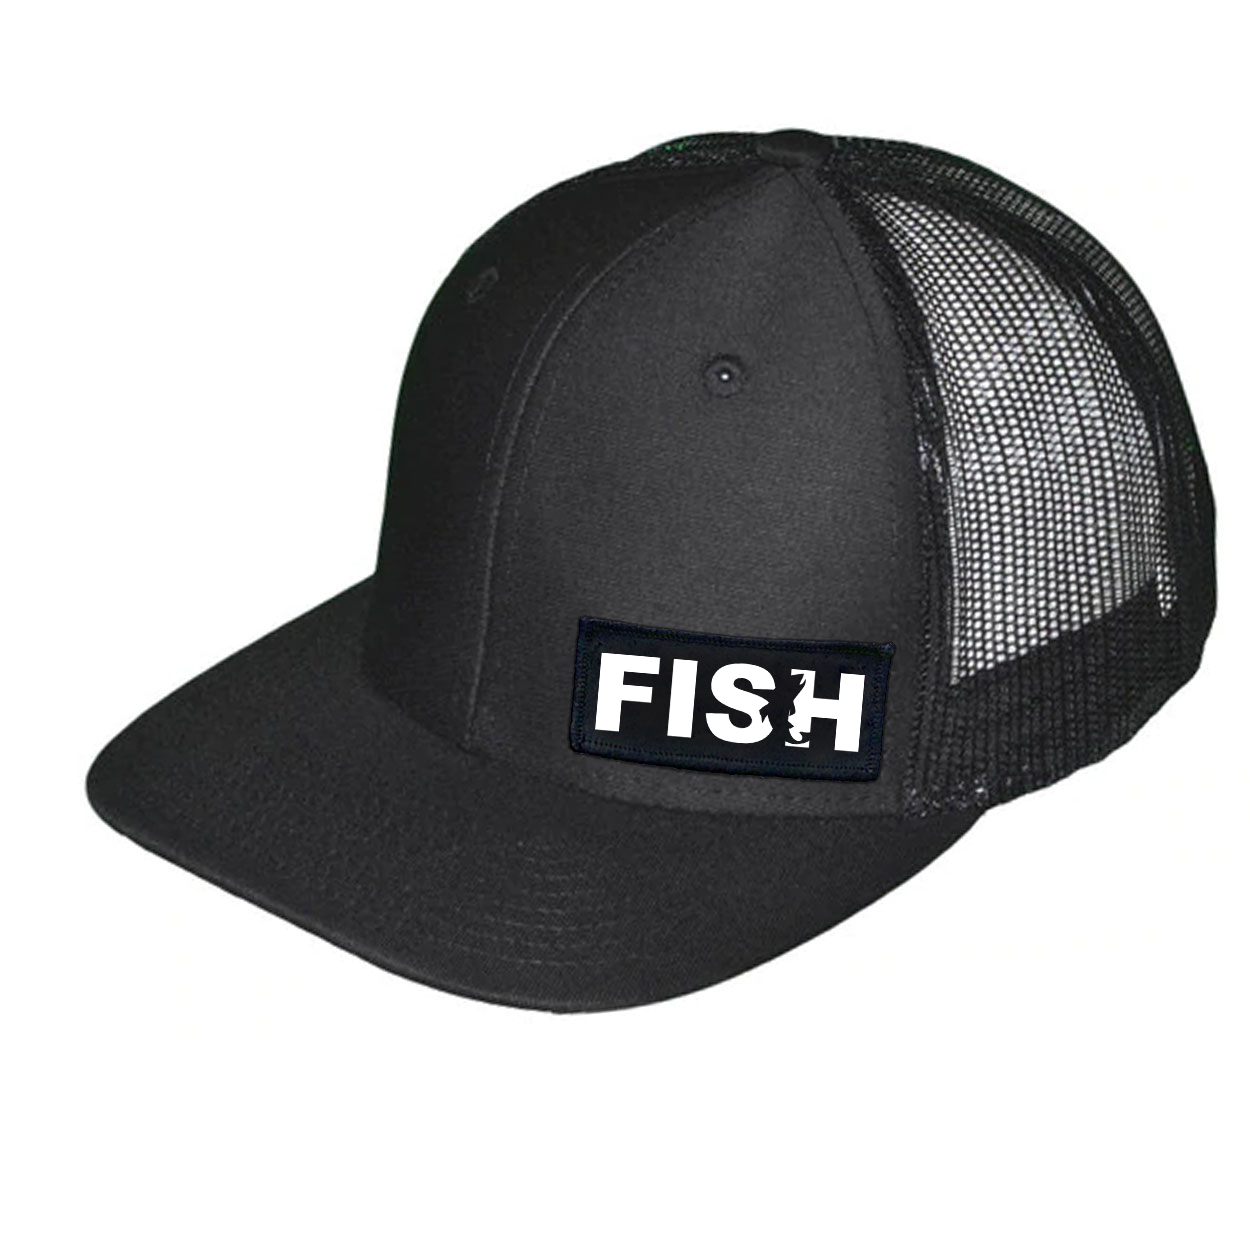 Fish Catch Logo Night Out Woven Patch Snapback Trucker Hat Black (White Logo)